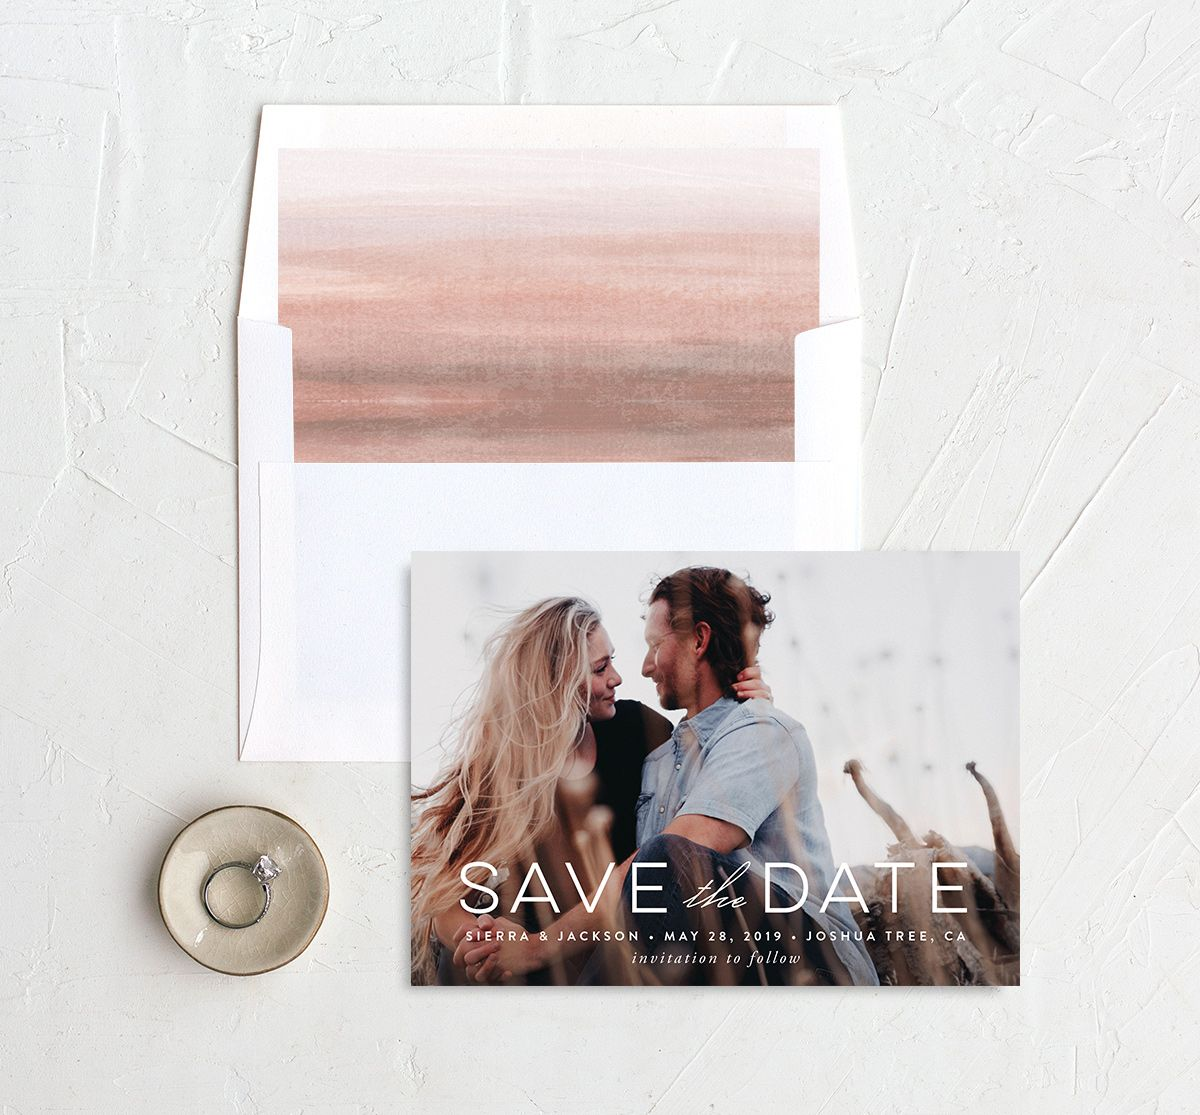 painted desert save the dates in pink with envelope liner